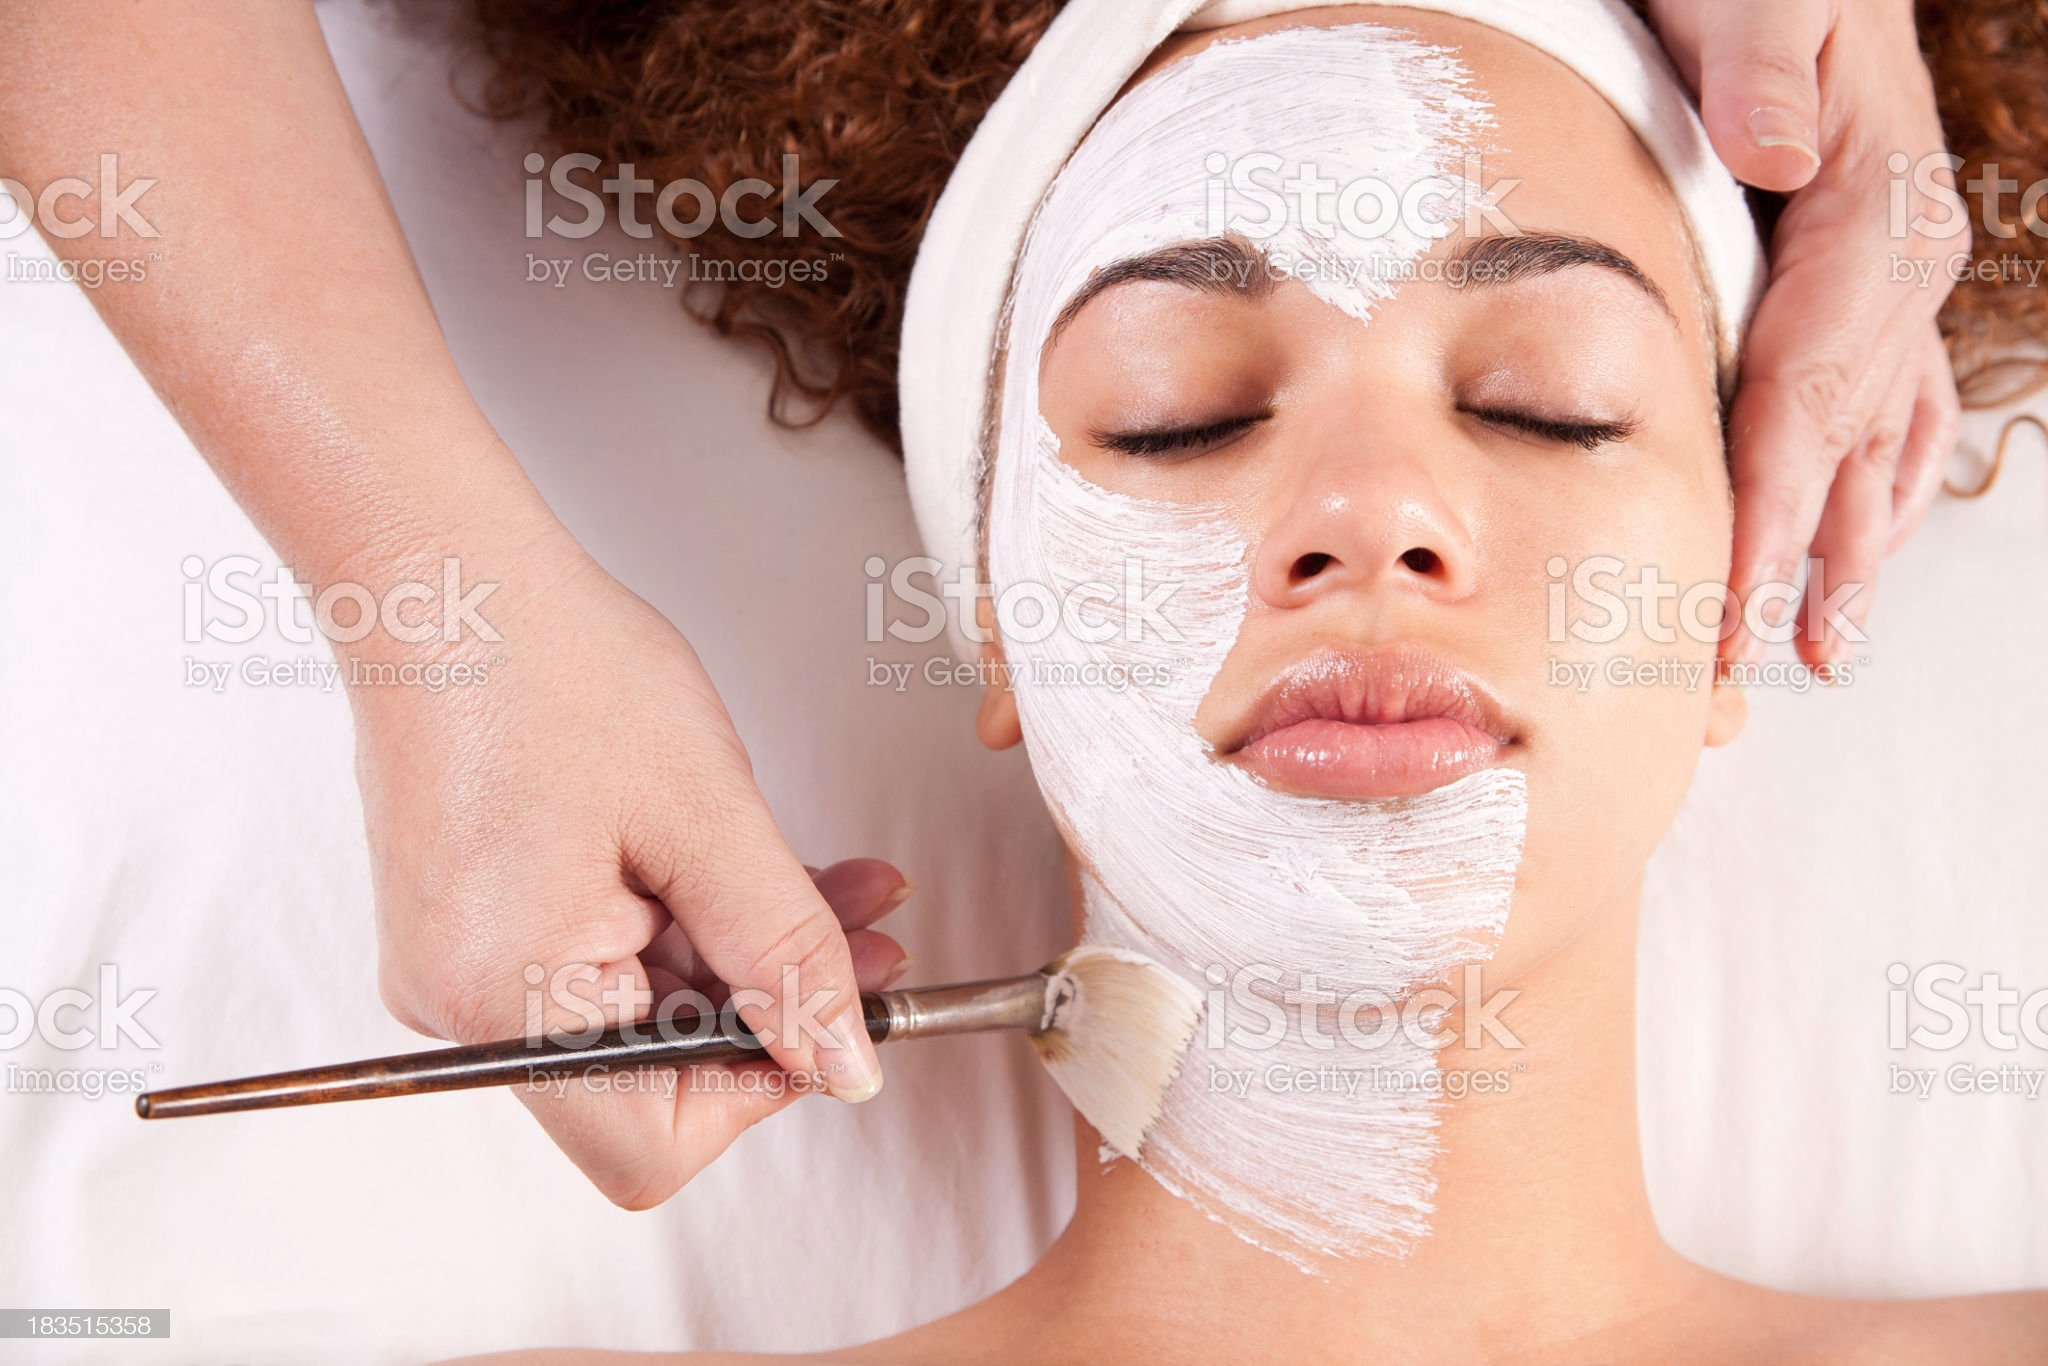 Woman getting white mud painted on her face royalty-free stock photo